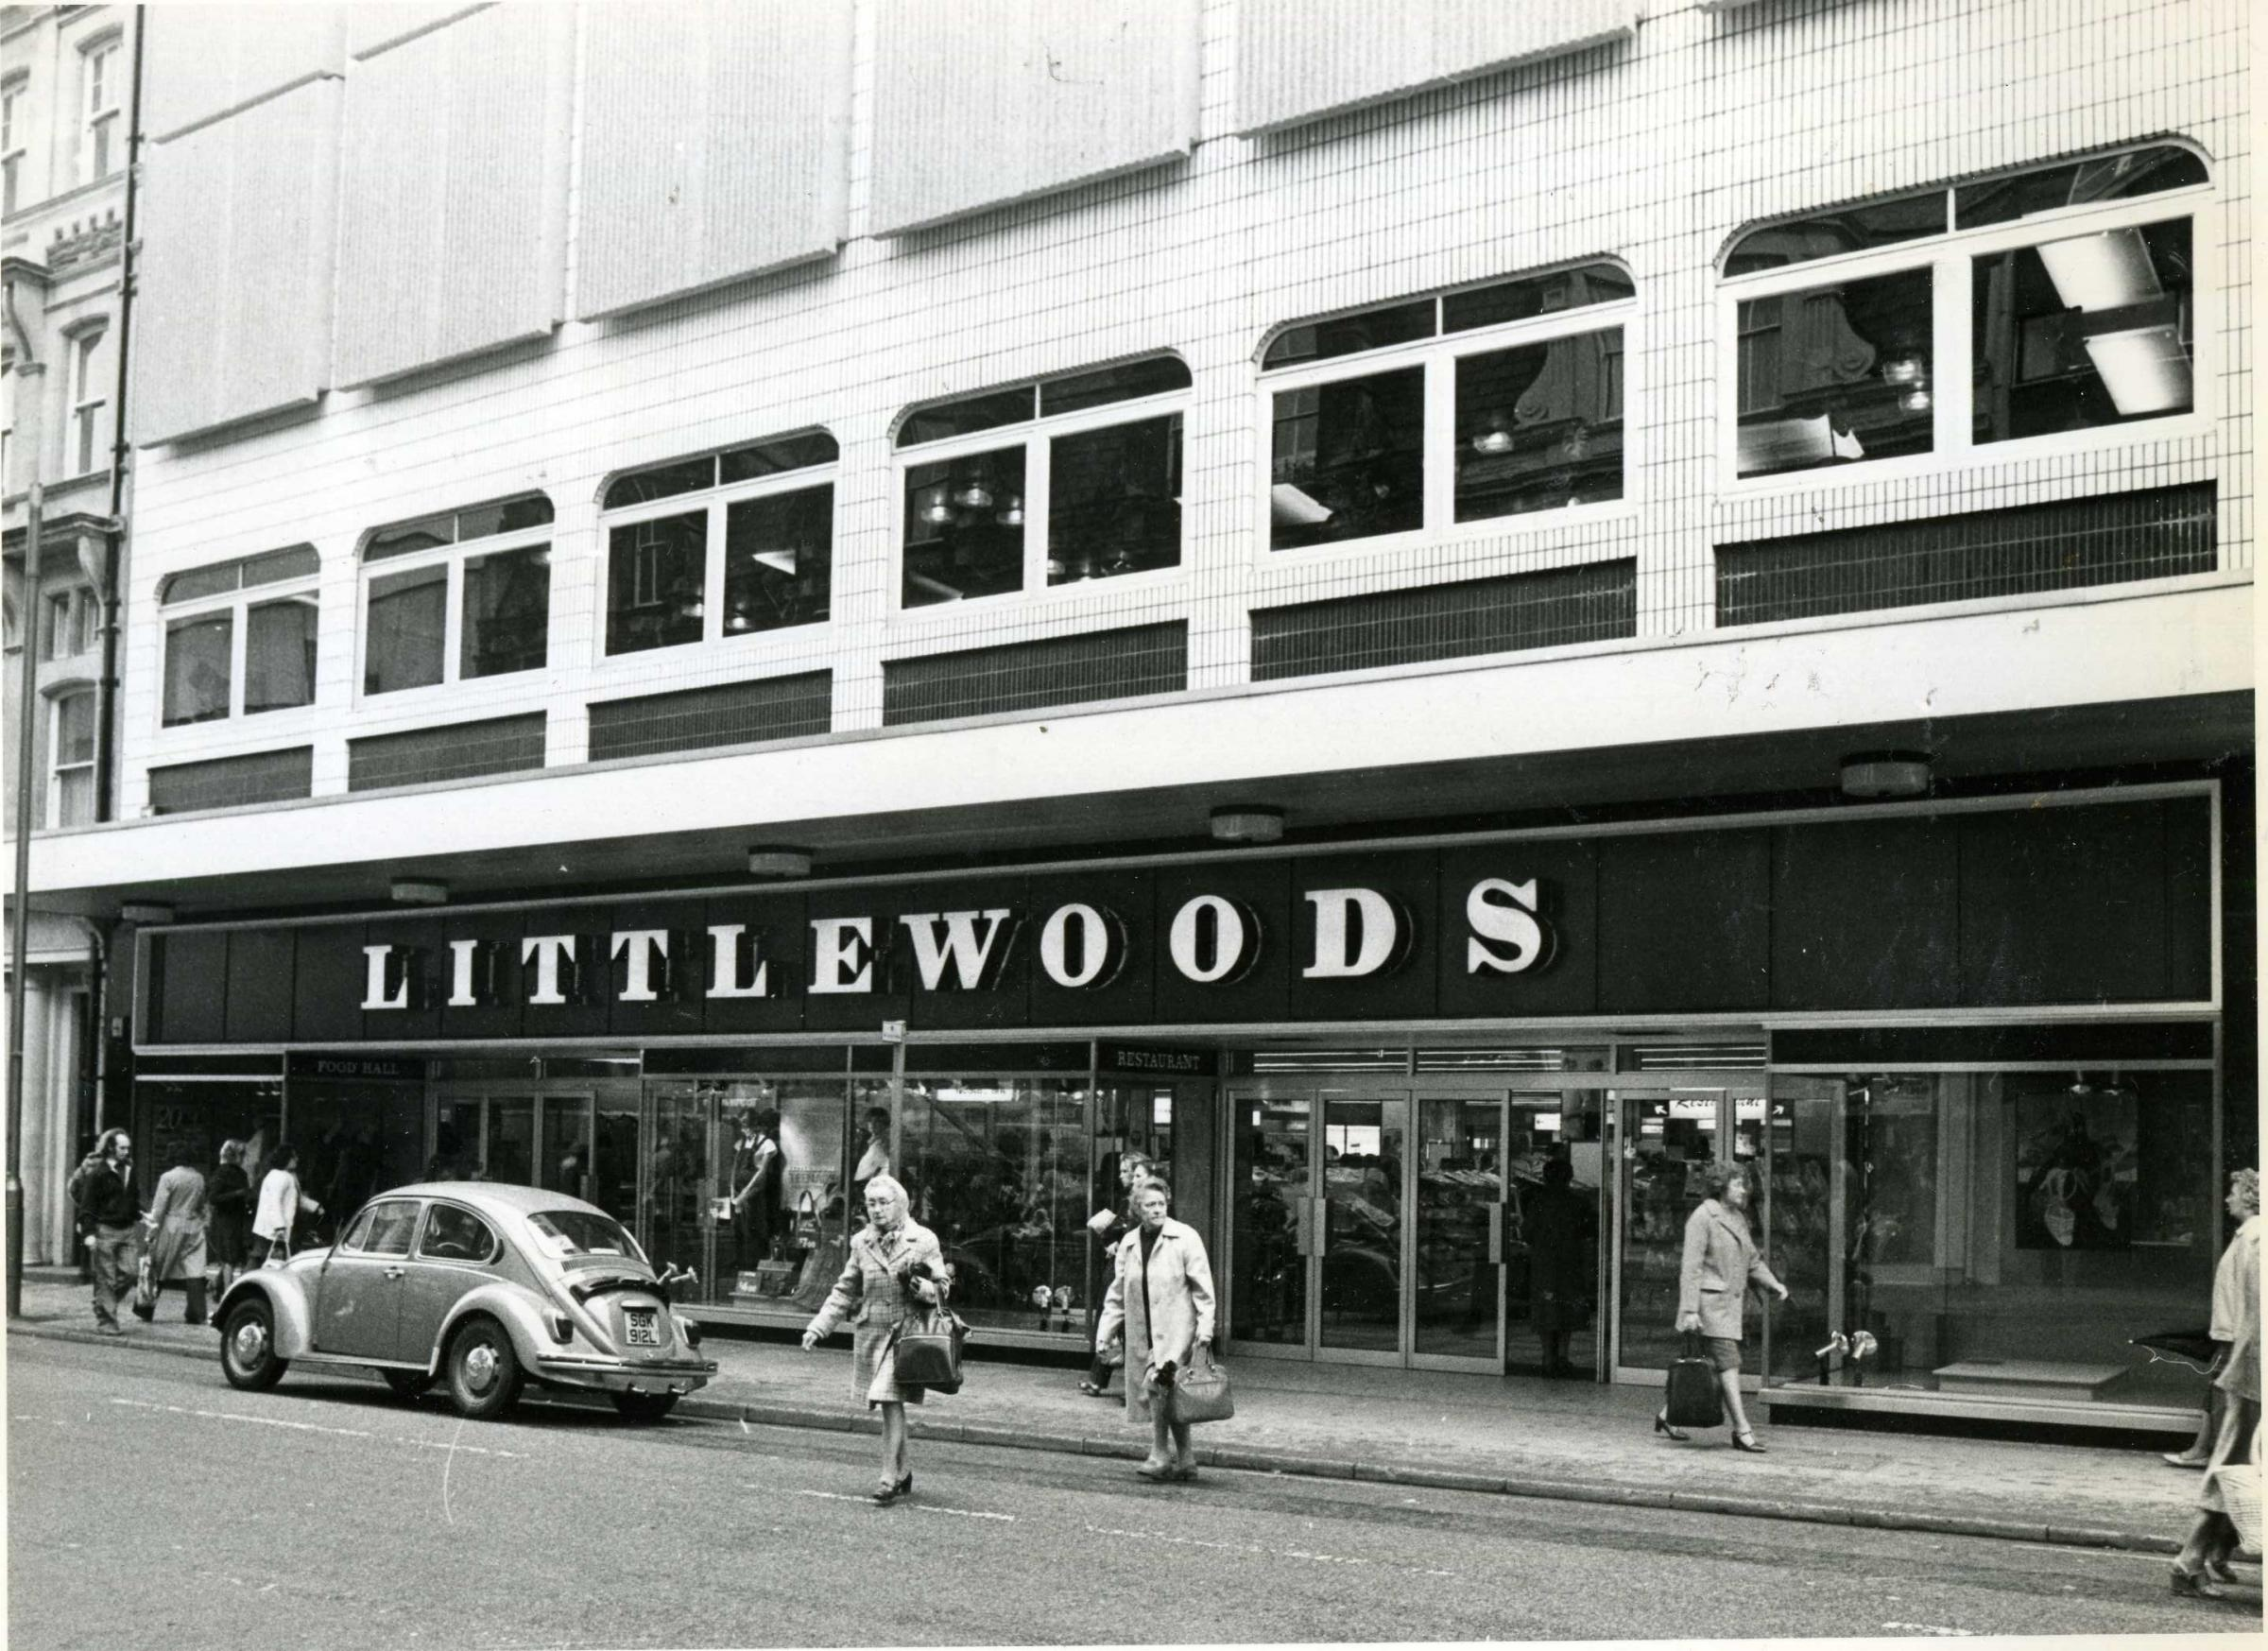 Littlewoods Store on Commercial Street, Newport, in 1980